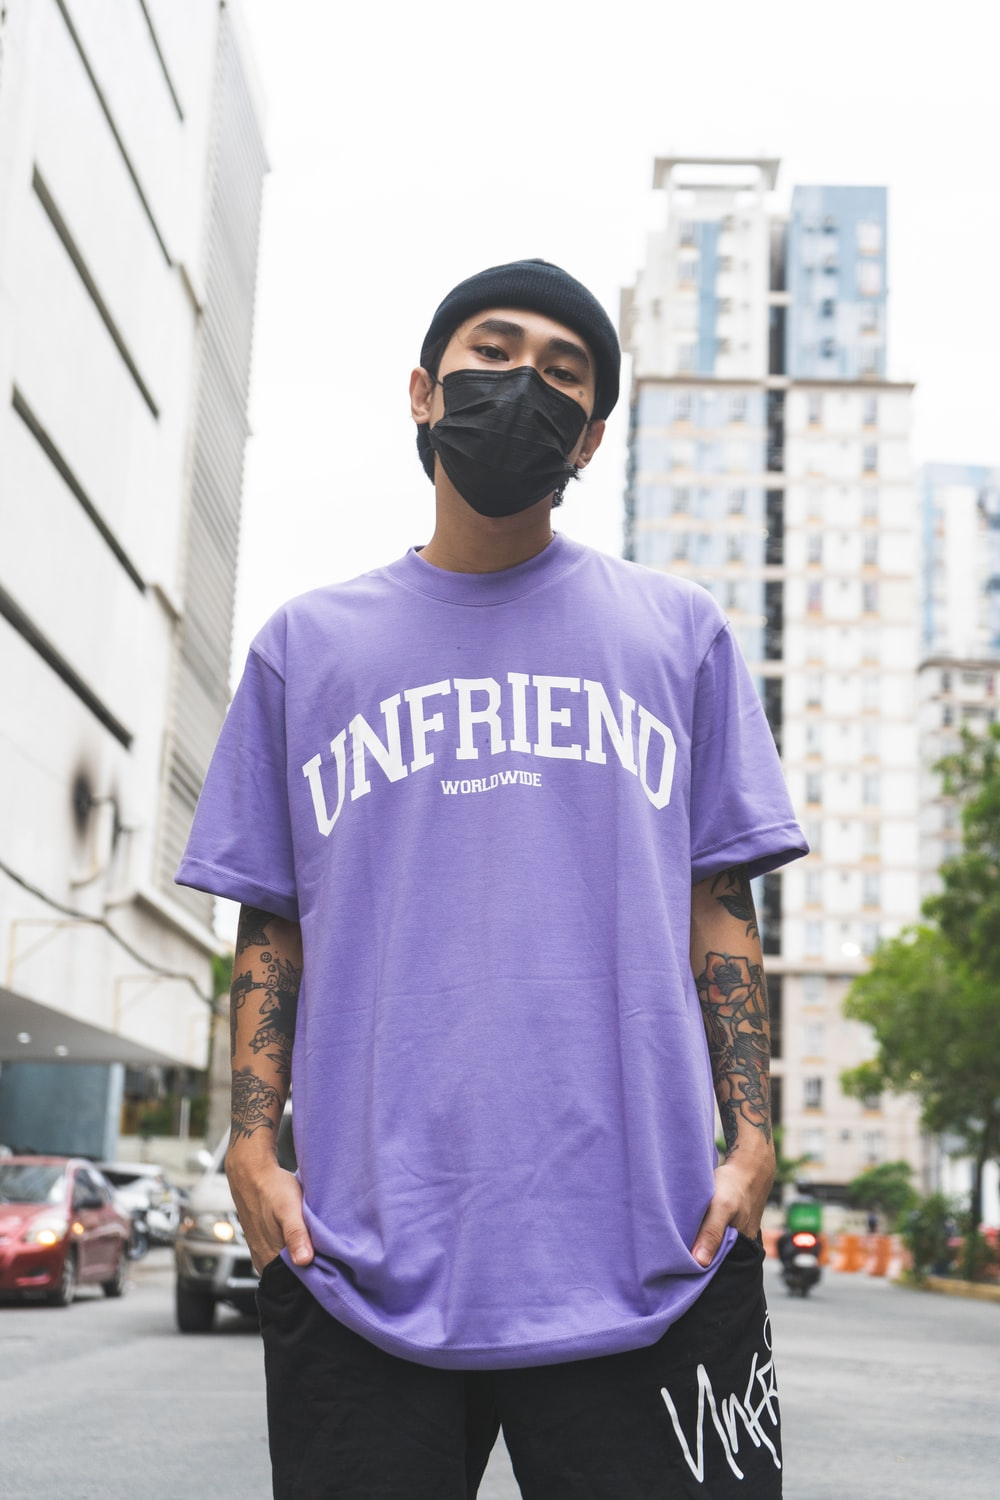 man in purple crew neck t-shirt wearing black sunglasses standing near white concrete building during